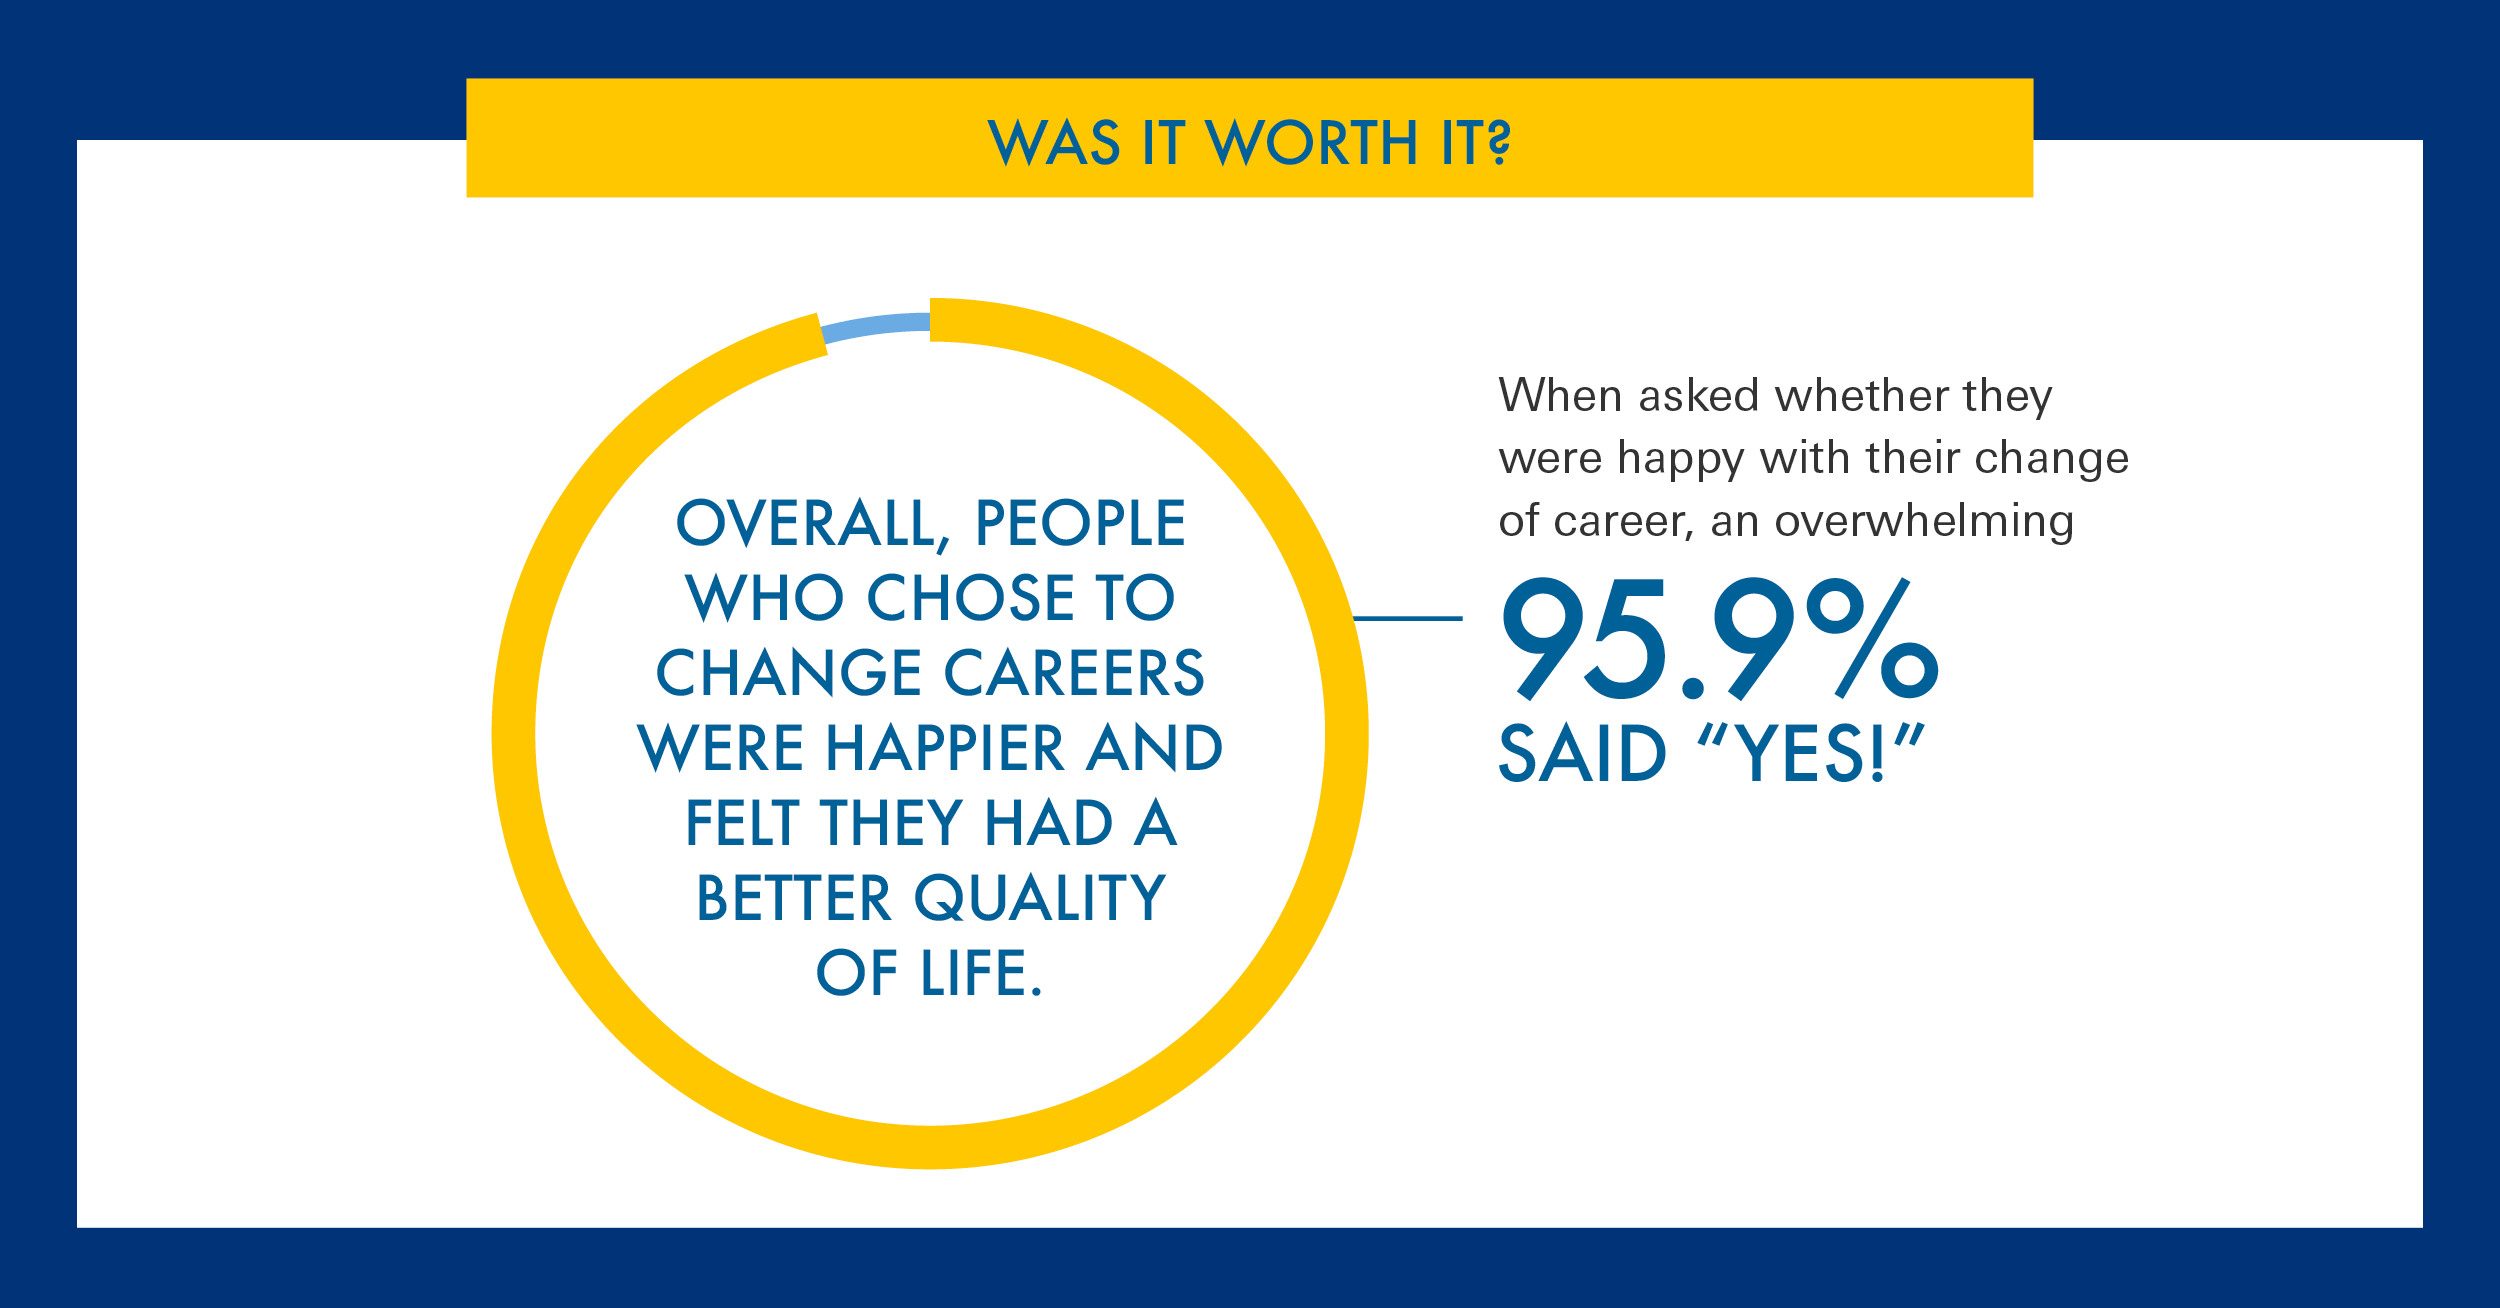 Was a career change worth it – 95.9% said yes